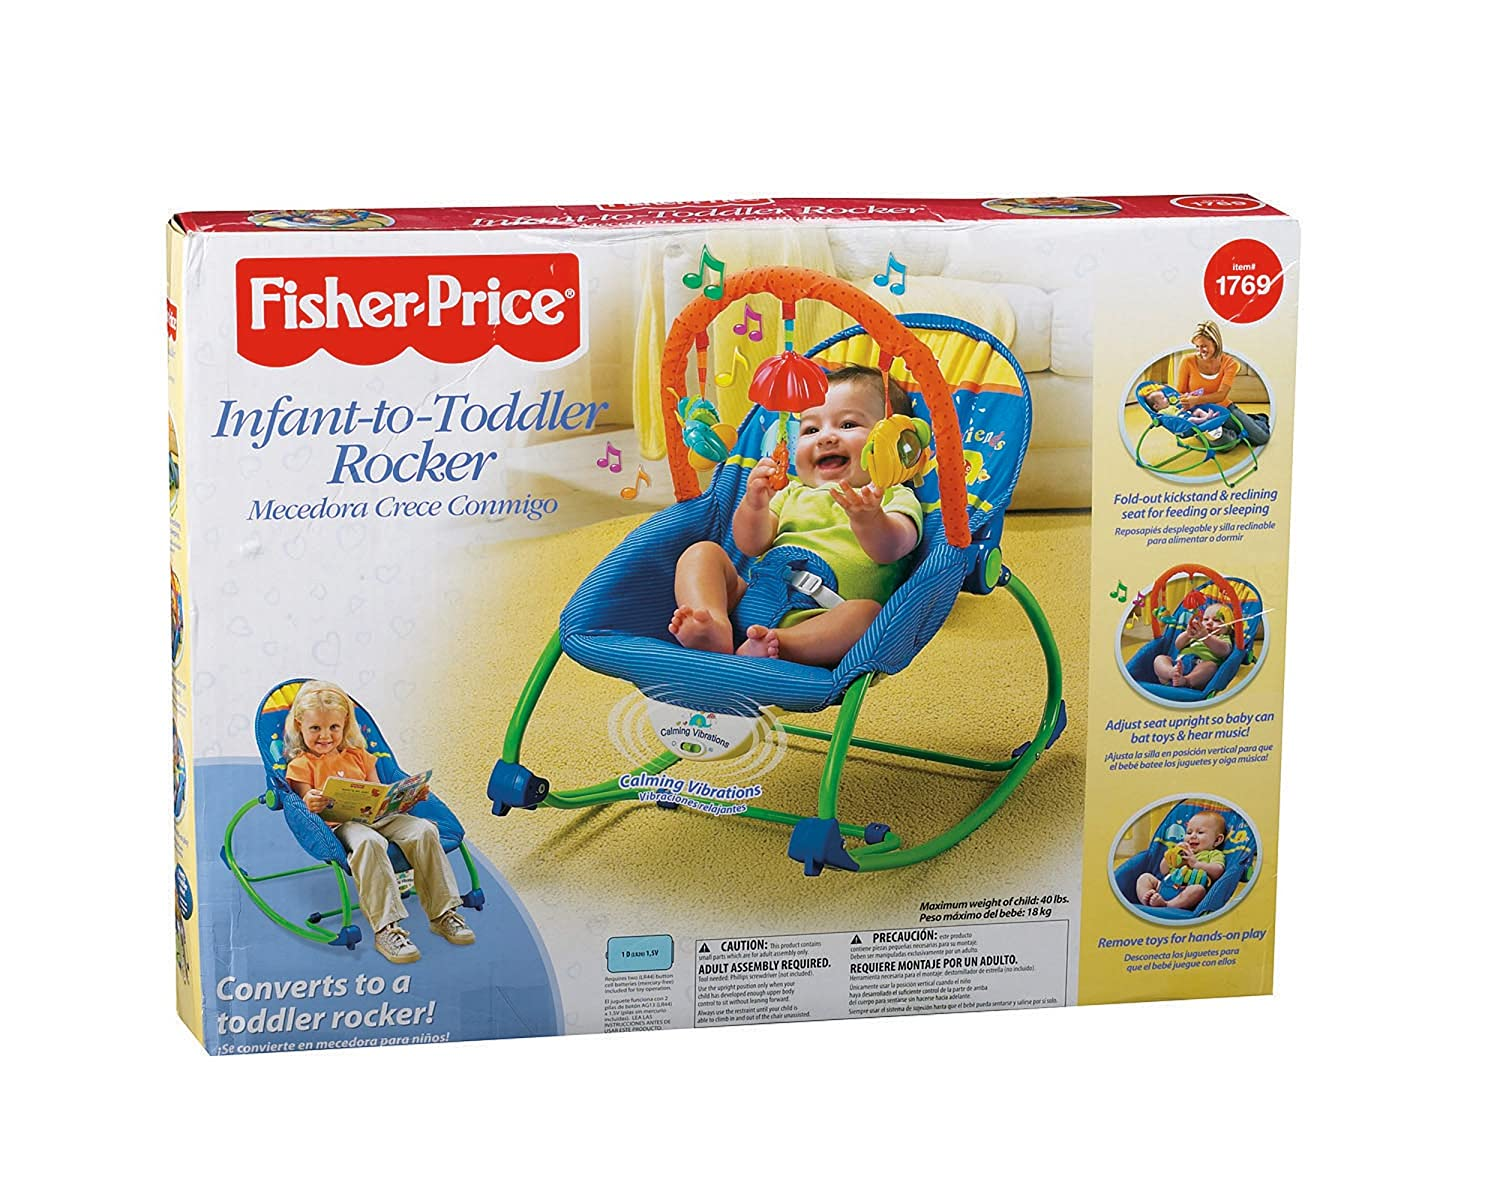 Amazon.com Fisher-Price Infant-To-Toddler Rocker Blue/Green (Discontinued by Manufacturer) Baby  sc 1 st  Amazon.com & Amazon.com: Fisher-Price Infant-To-Toddler Rocker Blue/Green ... islam-shia.org